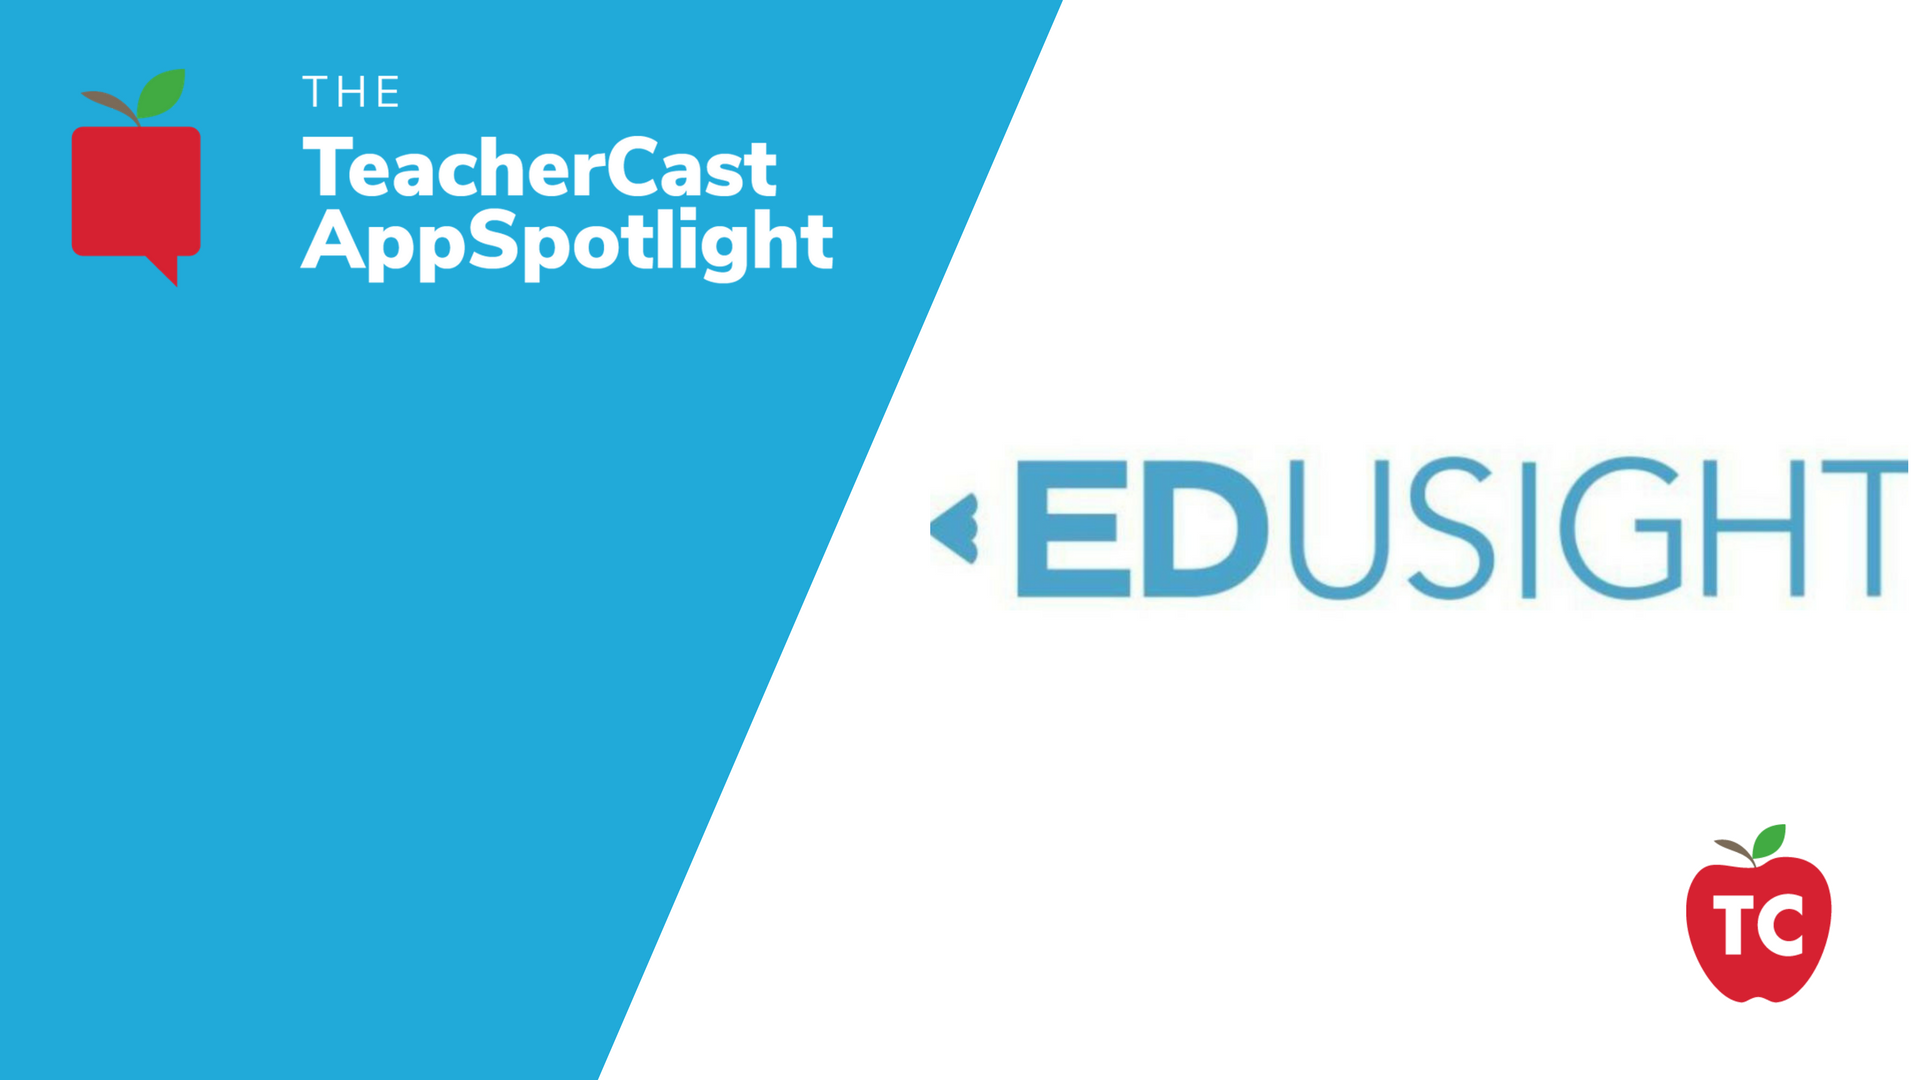 Edusight